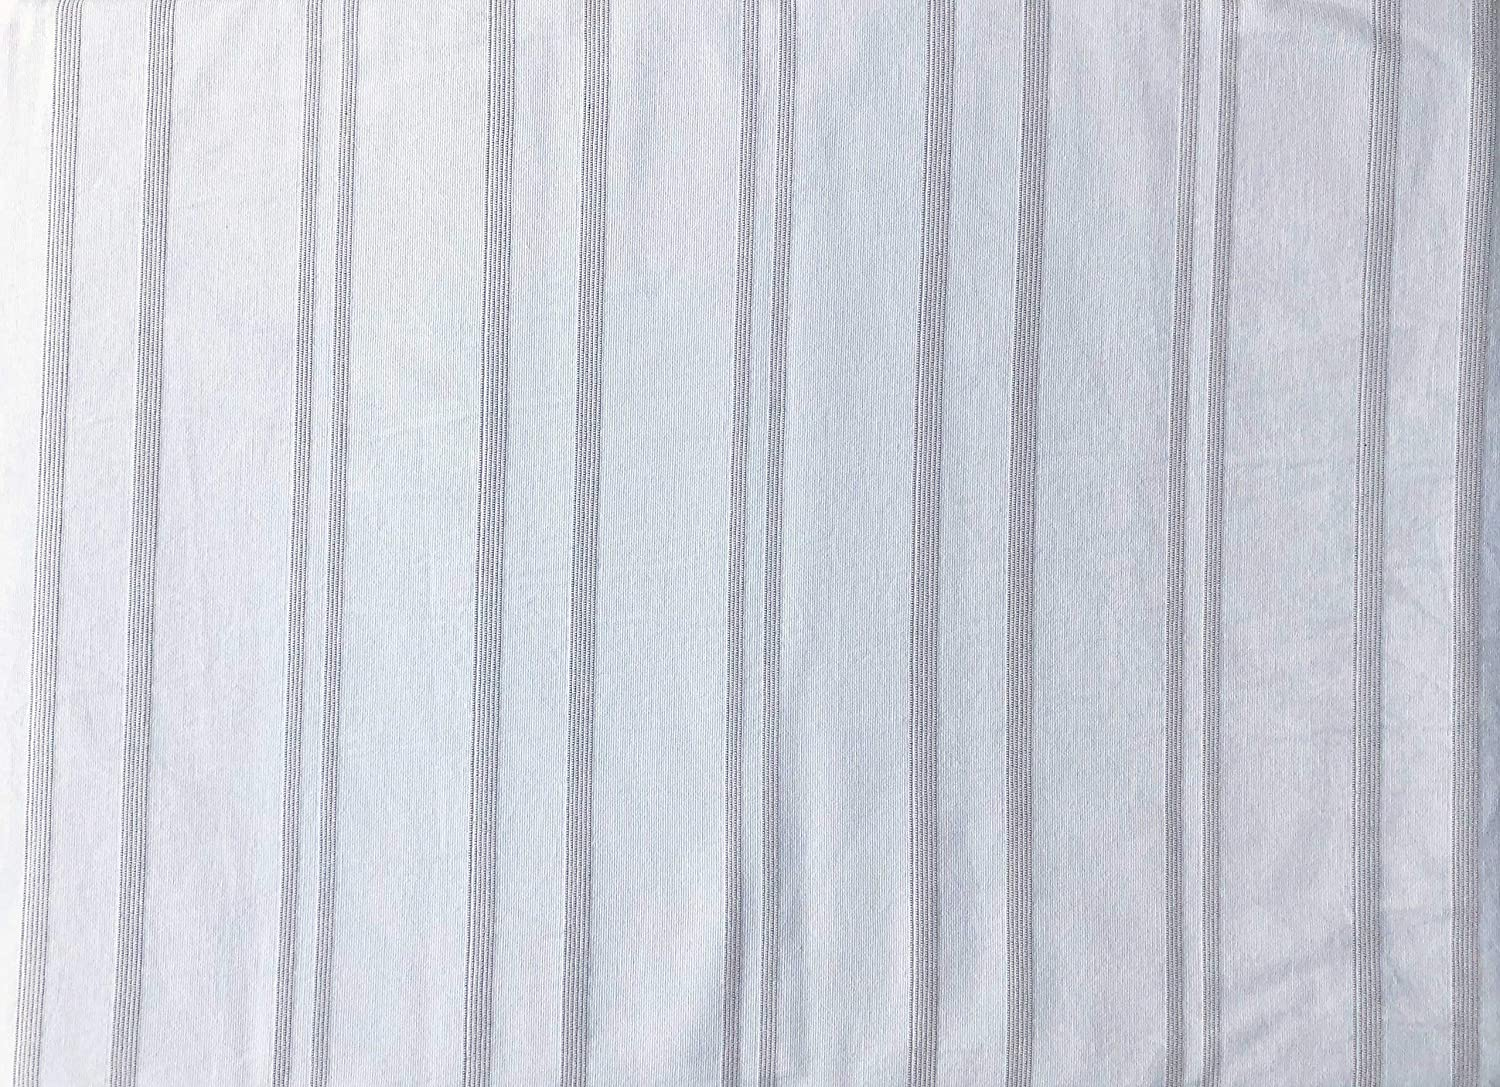 Inup Portugal 3pc Duvet Cover Set Textured Sewn Stripes of Varying Widths Taupe Thread on White Comforter Quilt Cover 100% Cotton Luxury (Queen)